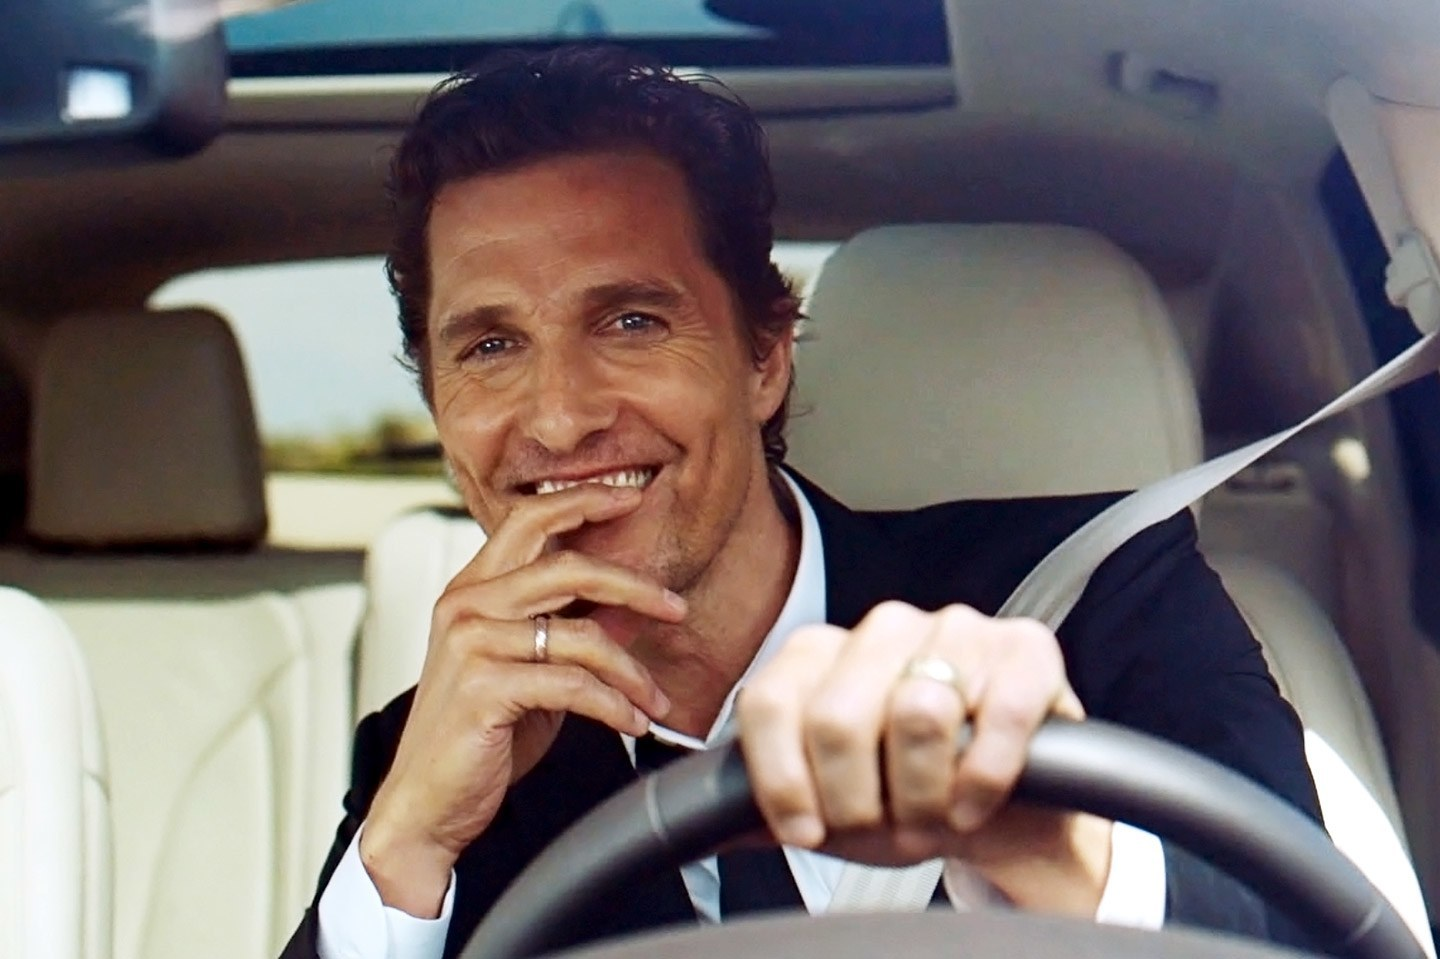 matthew-mcconaughey-lincoln-commercial-jim-carrey